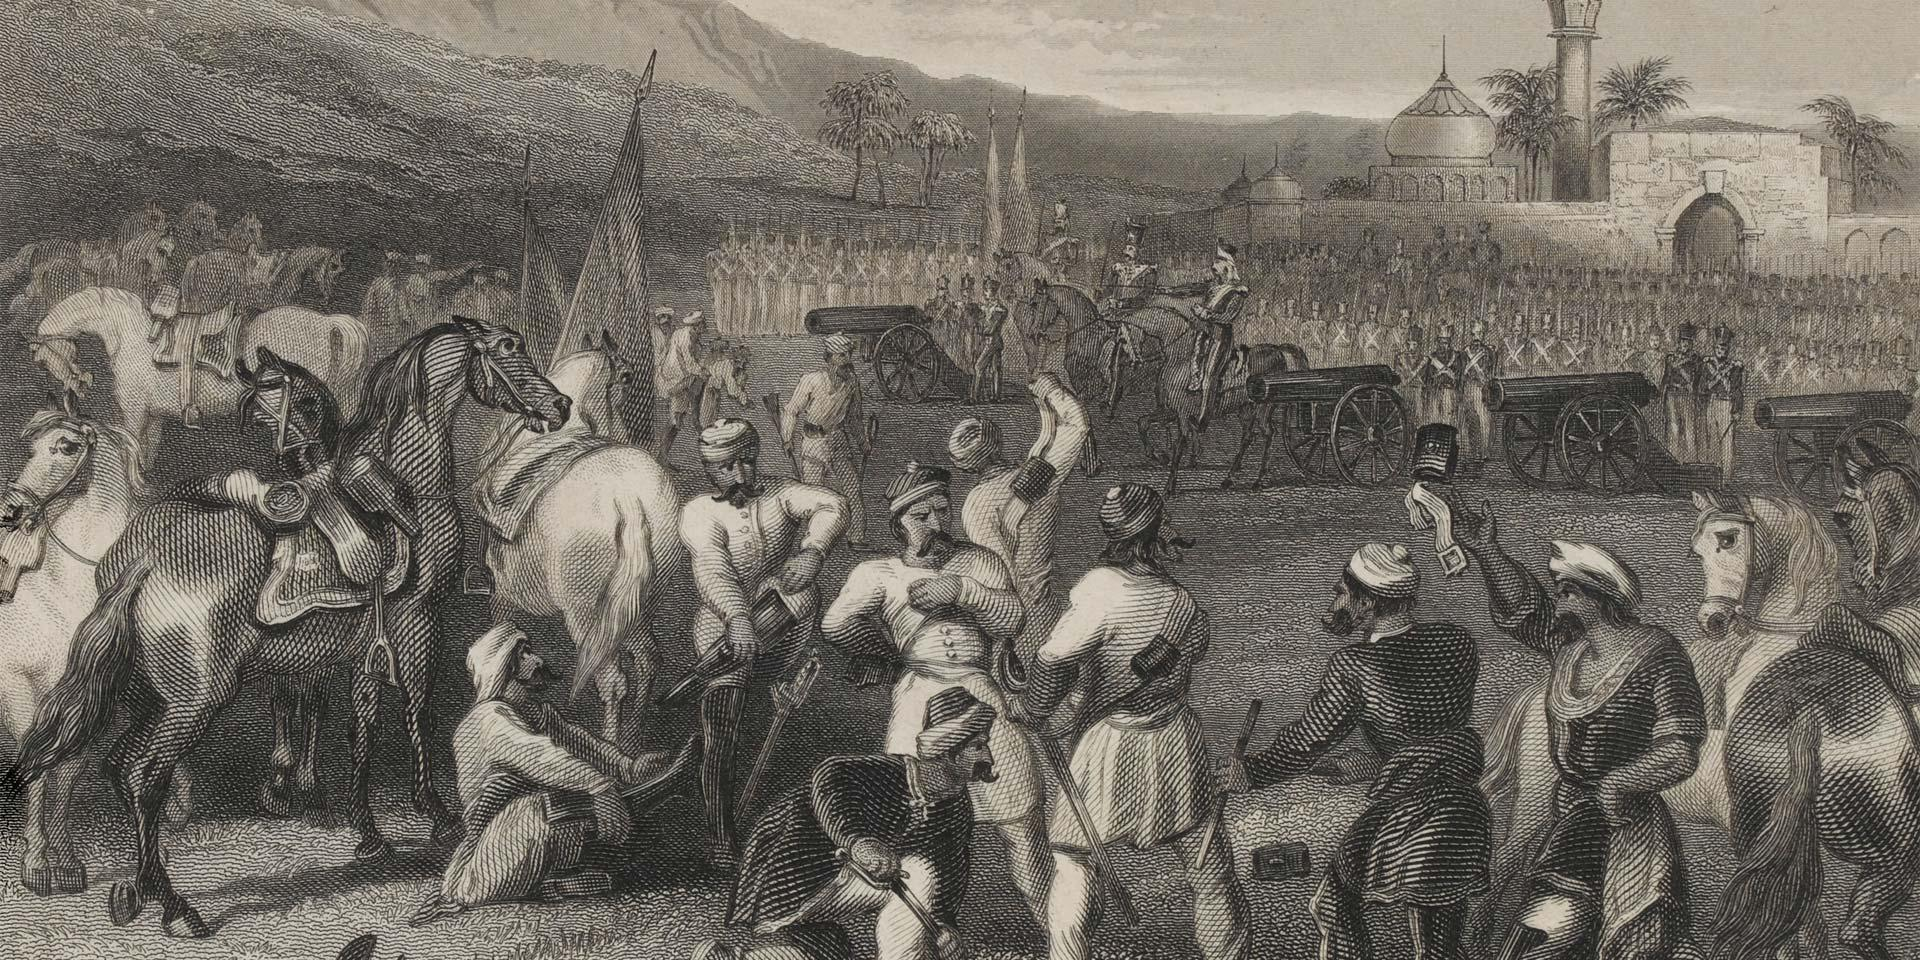 Disarming of the 11th Cavalry at Berhampore, 1857